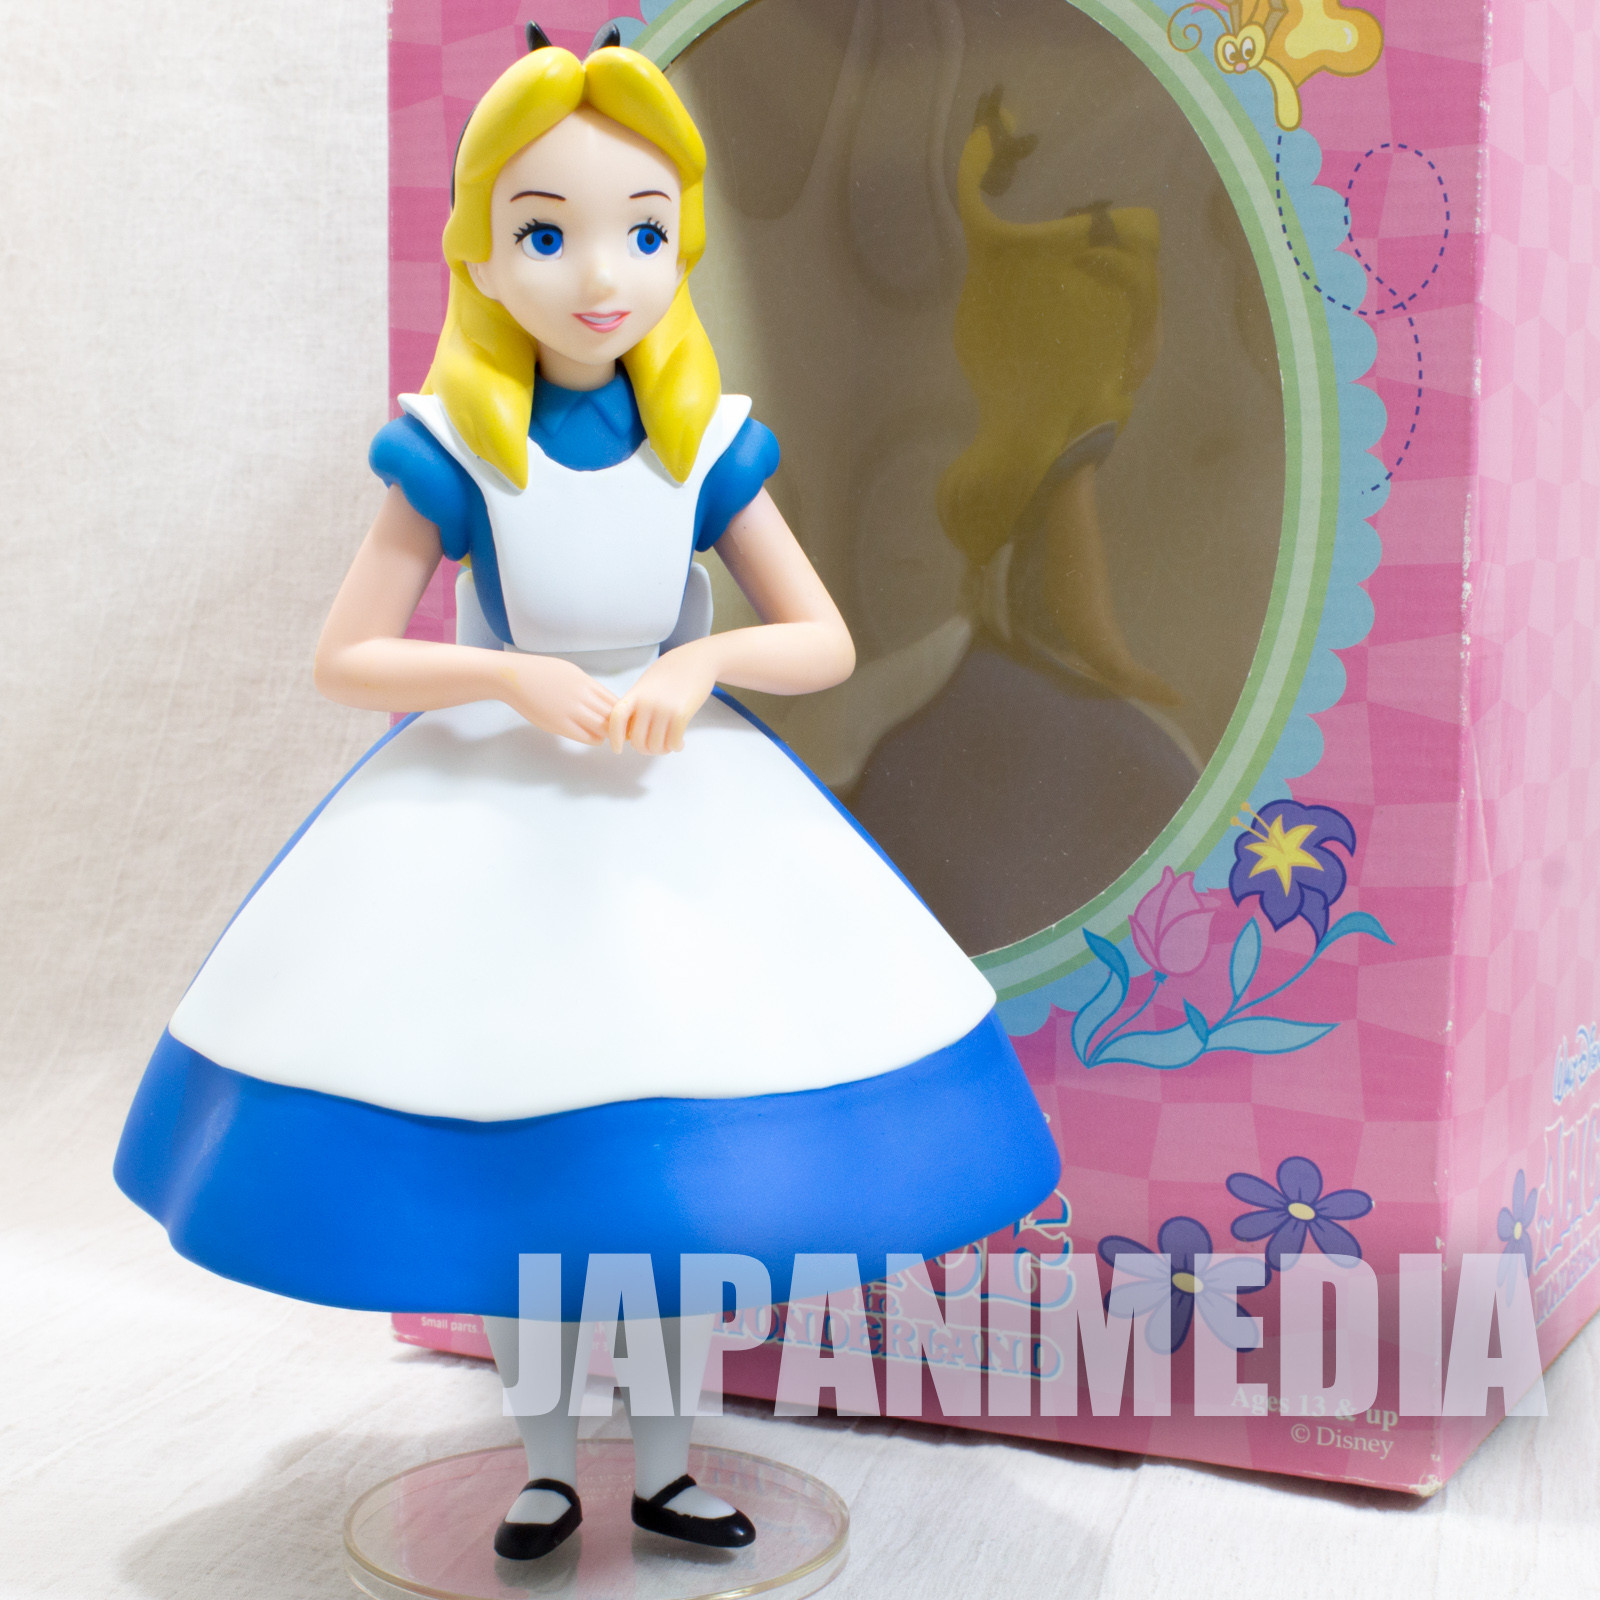 "RARE! Alice in Wonderland VCD Vinyl Collectible Dolls Figure 9"" Medicom Toy JAPAN"